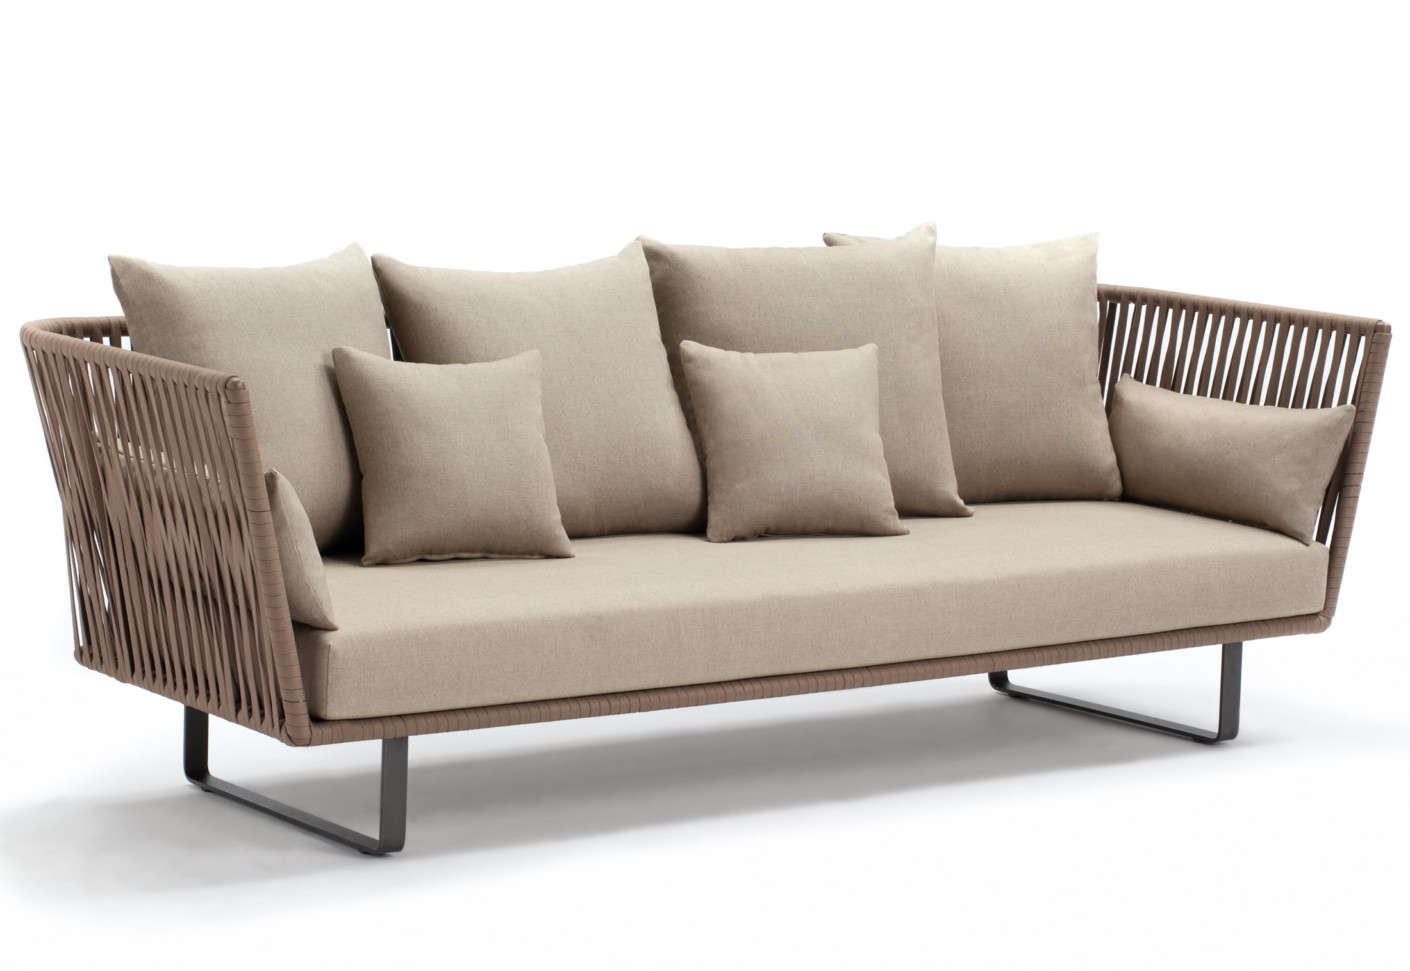 Bitta sofa by kettal stylepark for Sofa rinconera exterior